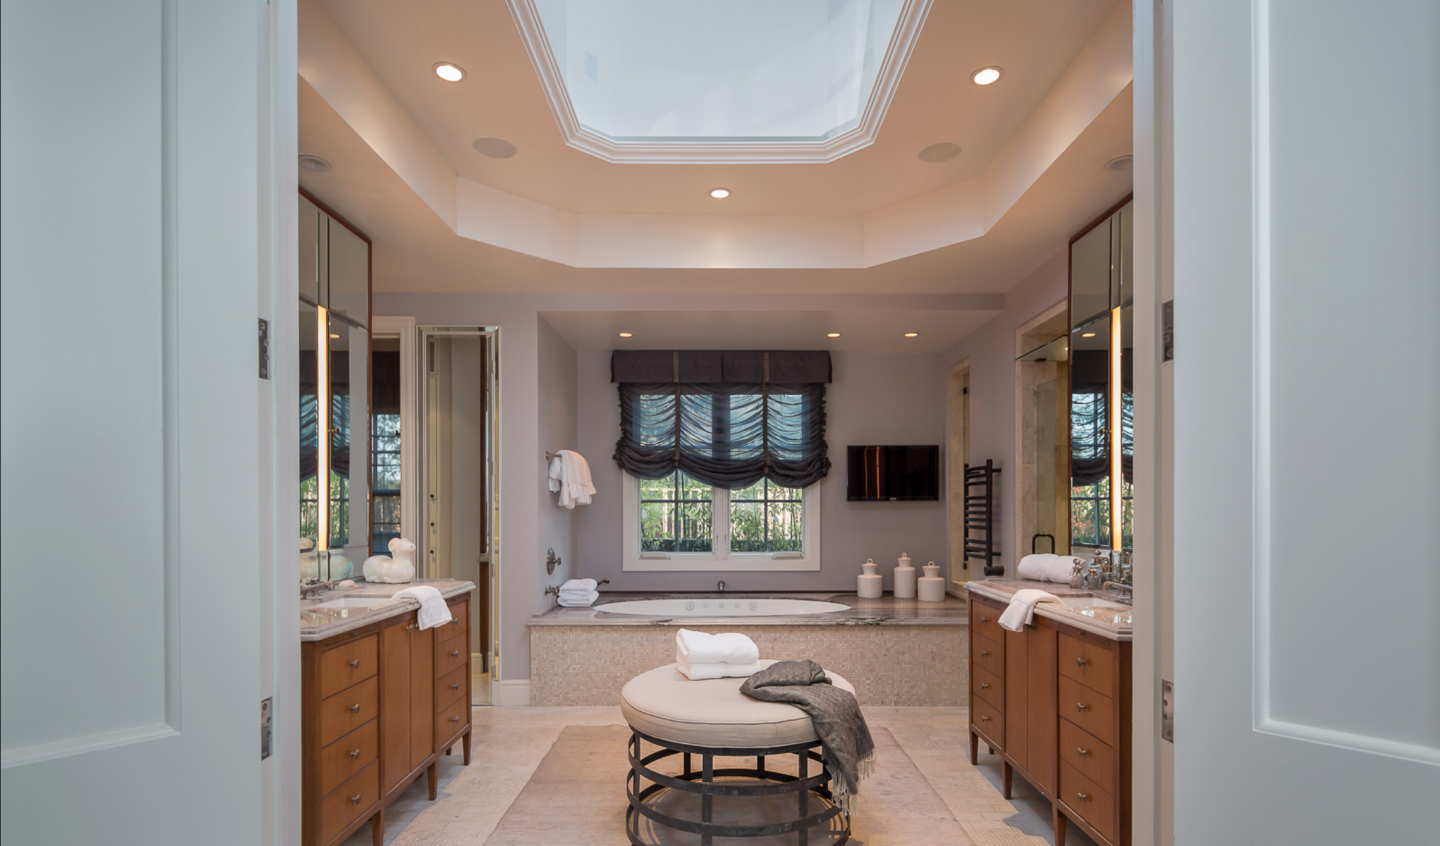 Master bathroom with glass dome skylight